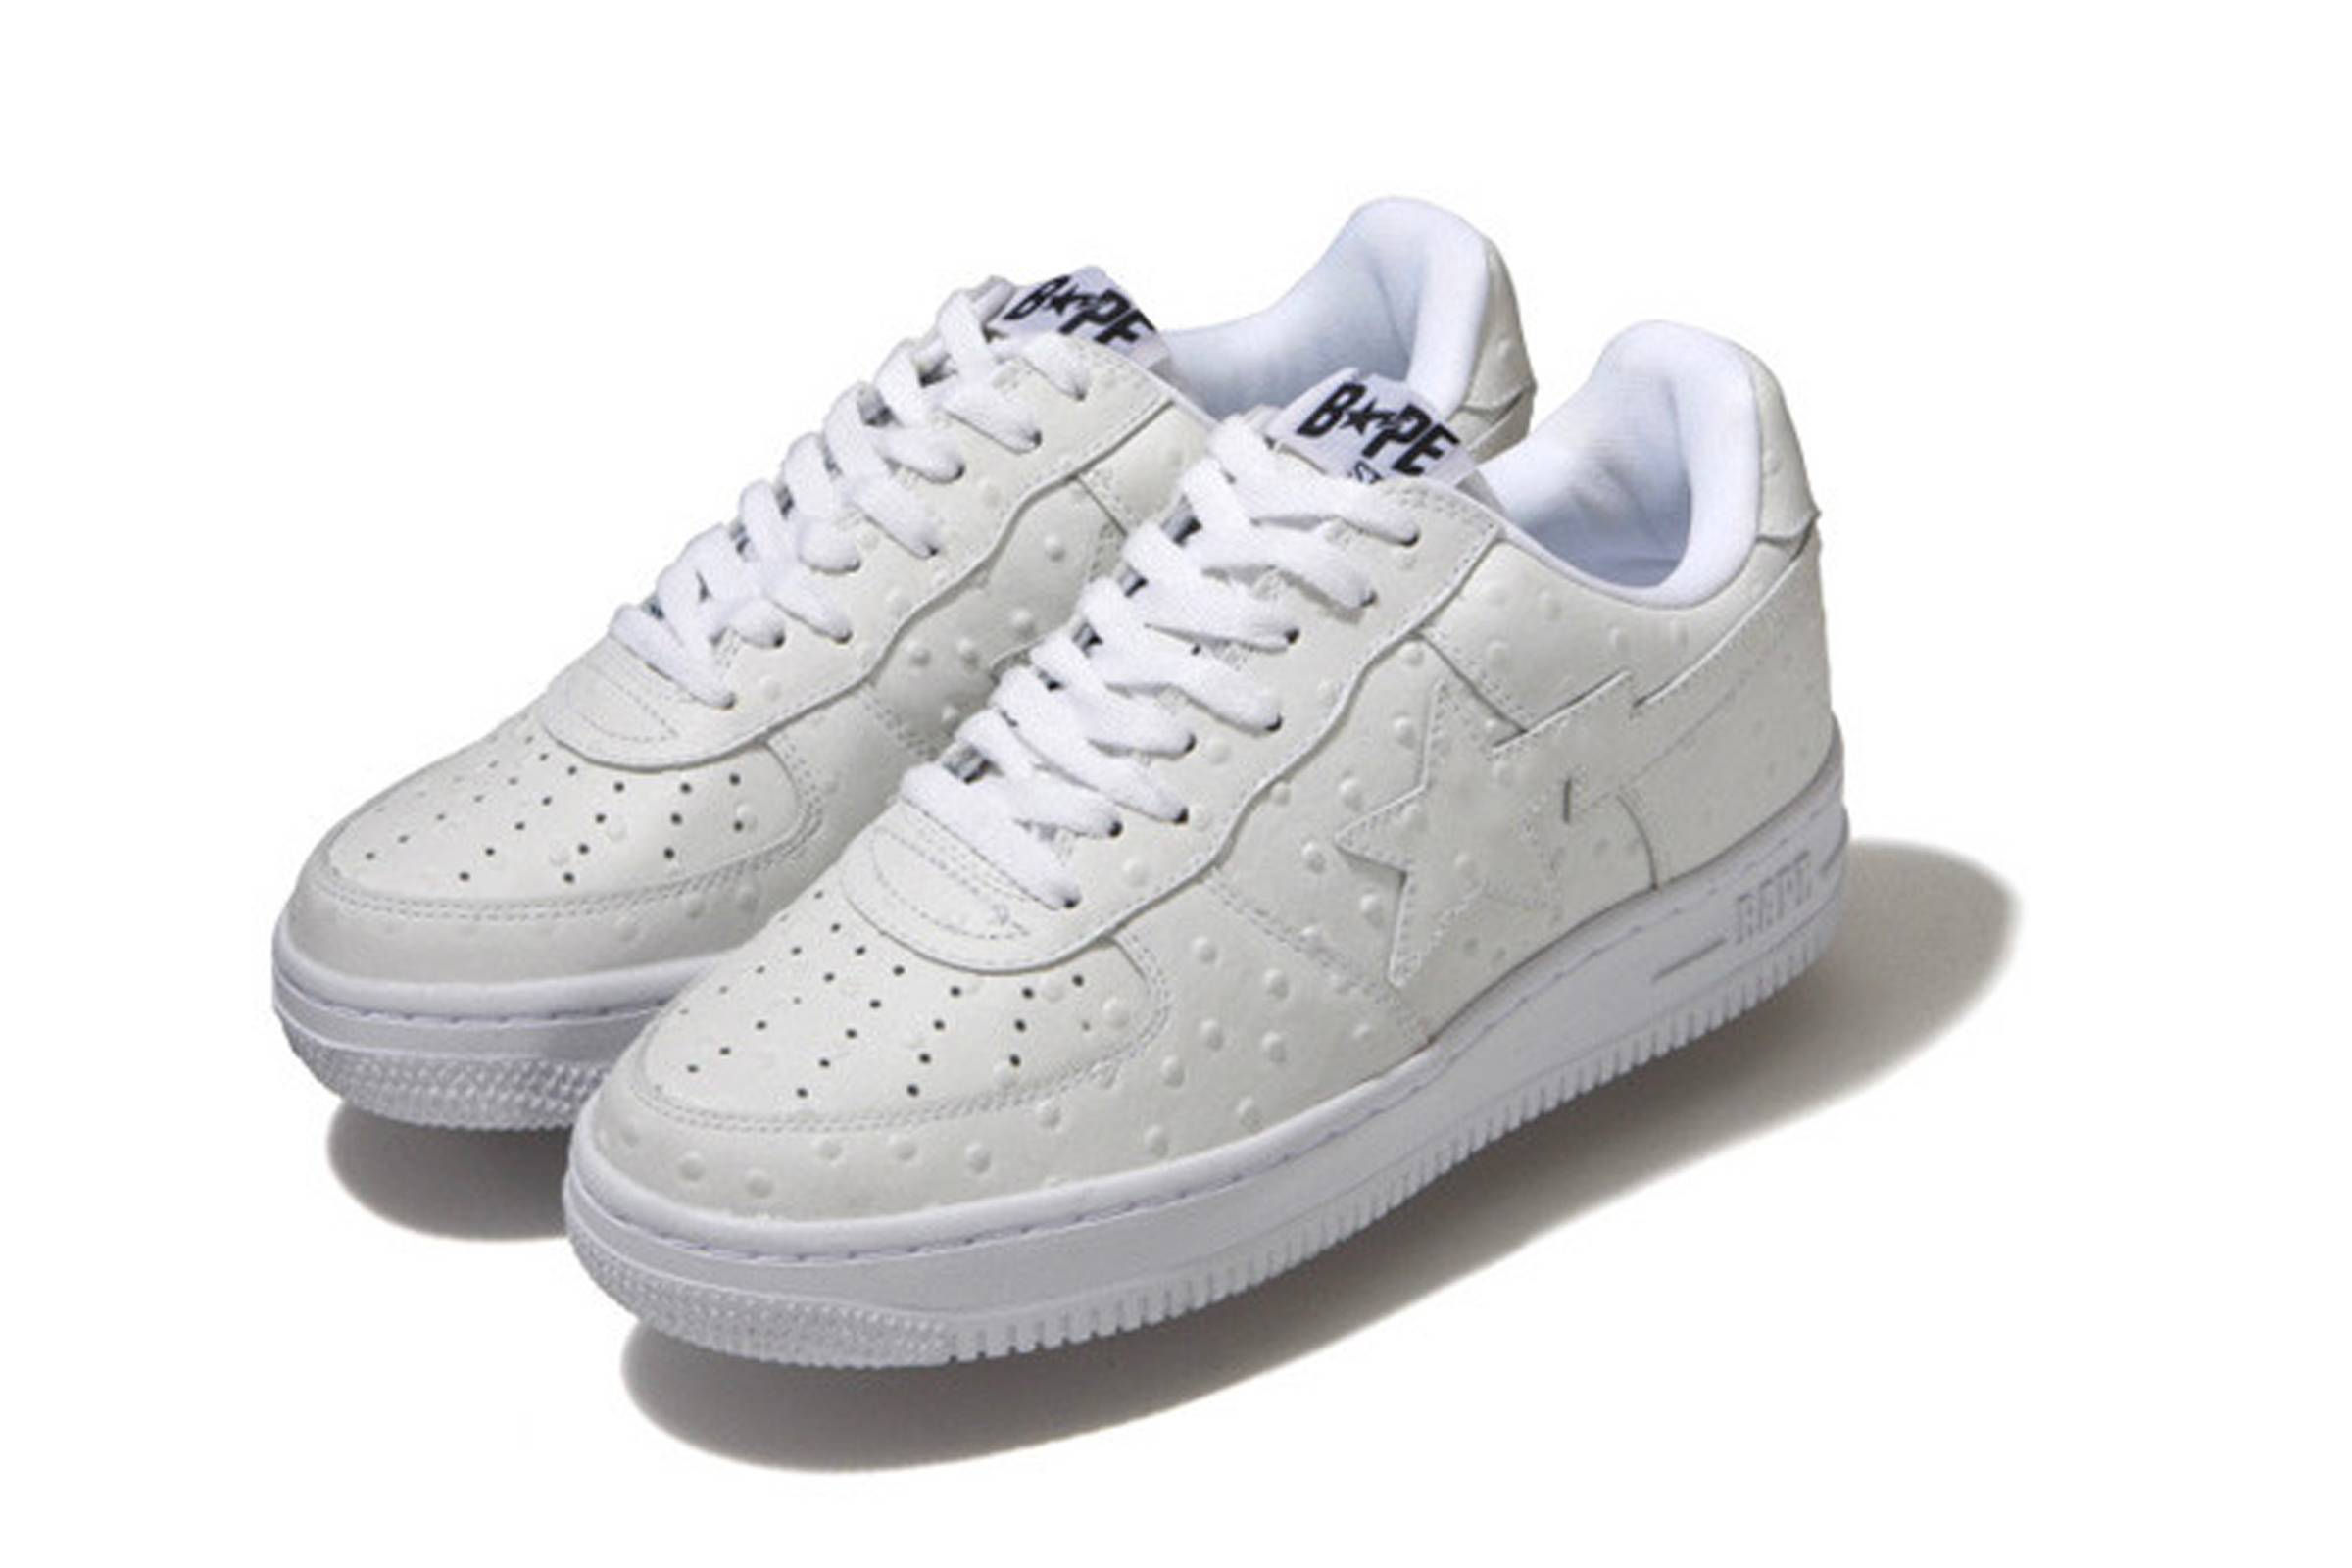 Ostrich Leather Bapesta (2009)